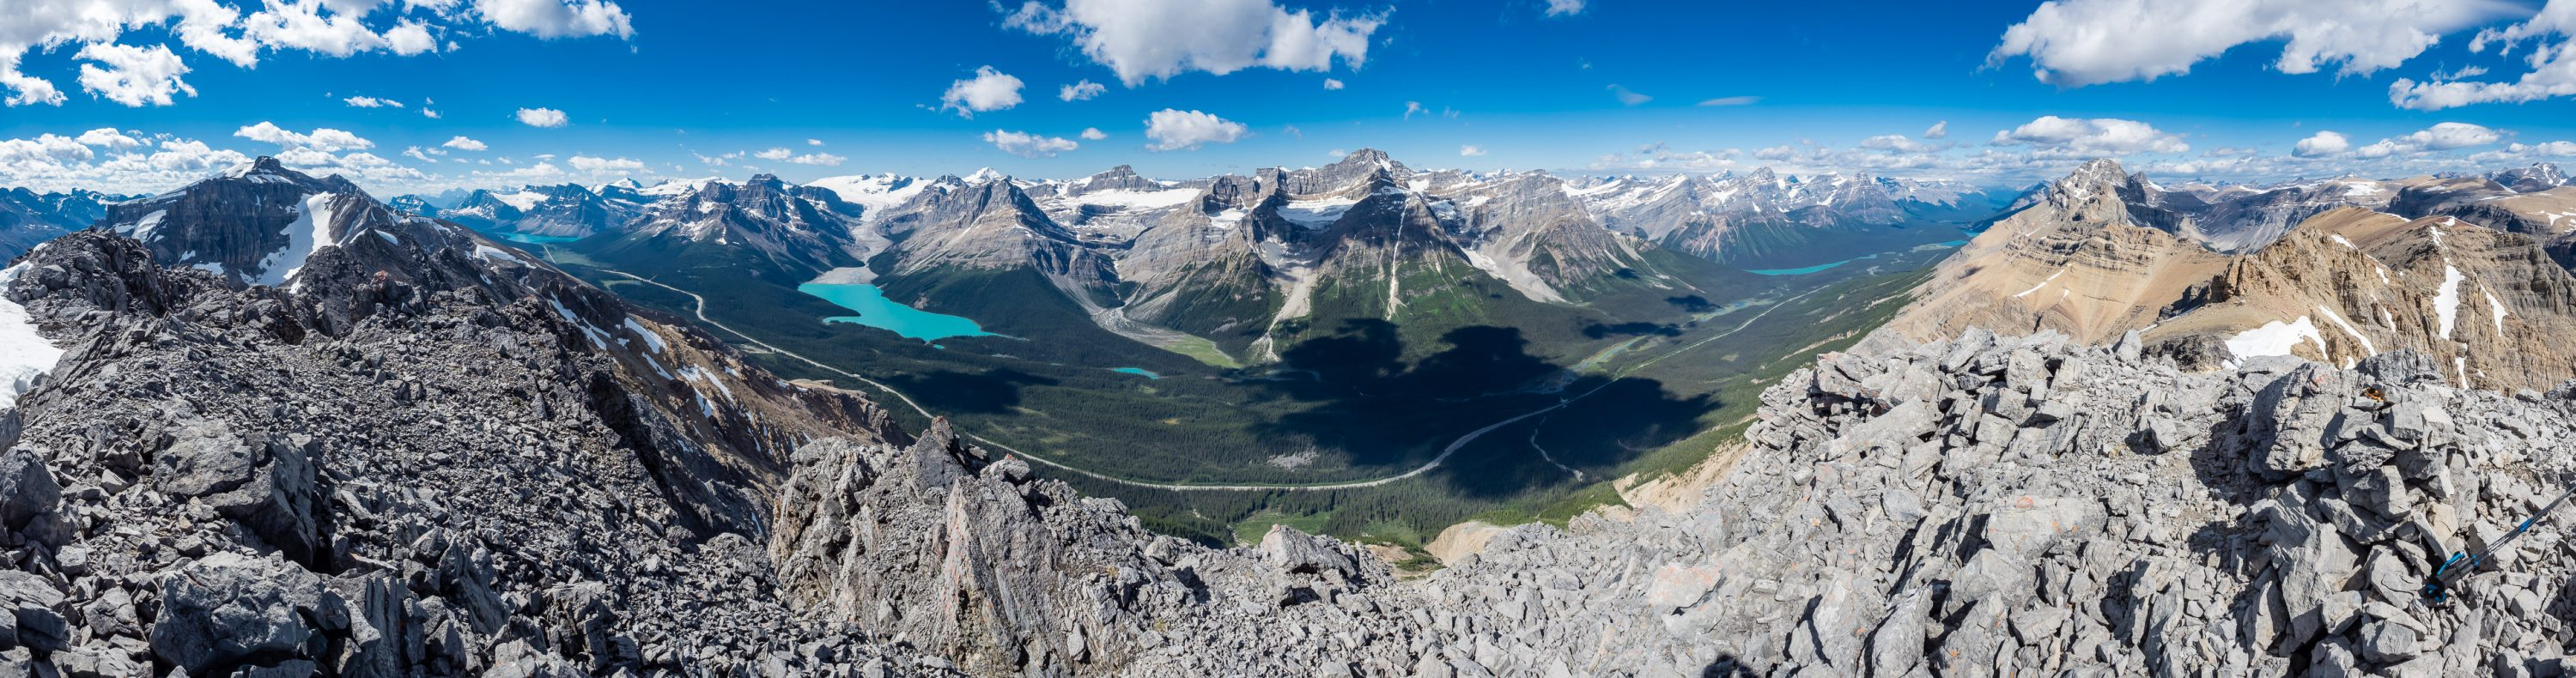 Great views from Silverhorn looking south (L), west (C) and north (R) along the Icefields Parkway including Bow Lake, Peyto Lake, Mistaya Lake and part of Waterfowl Lake (L to R).